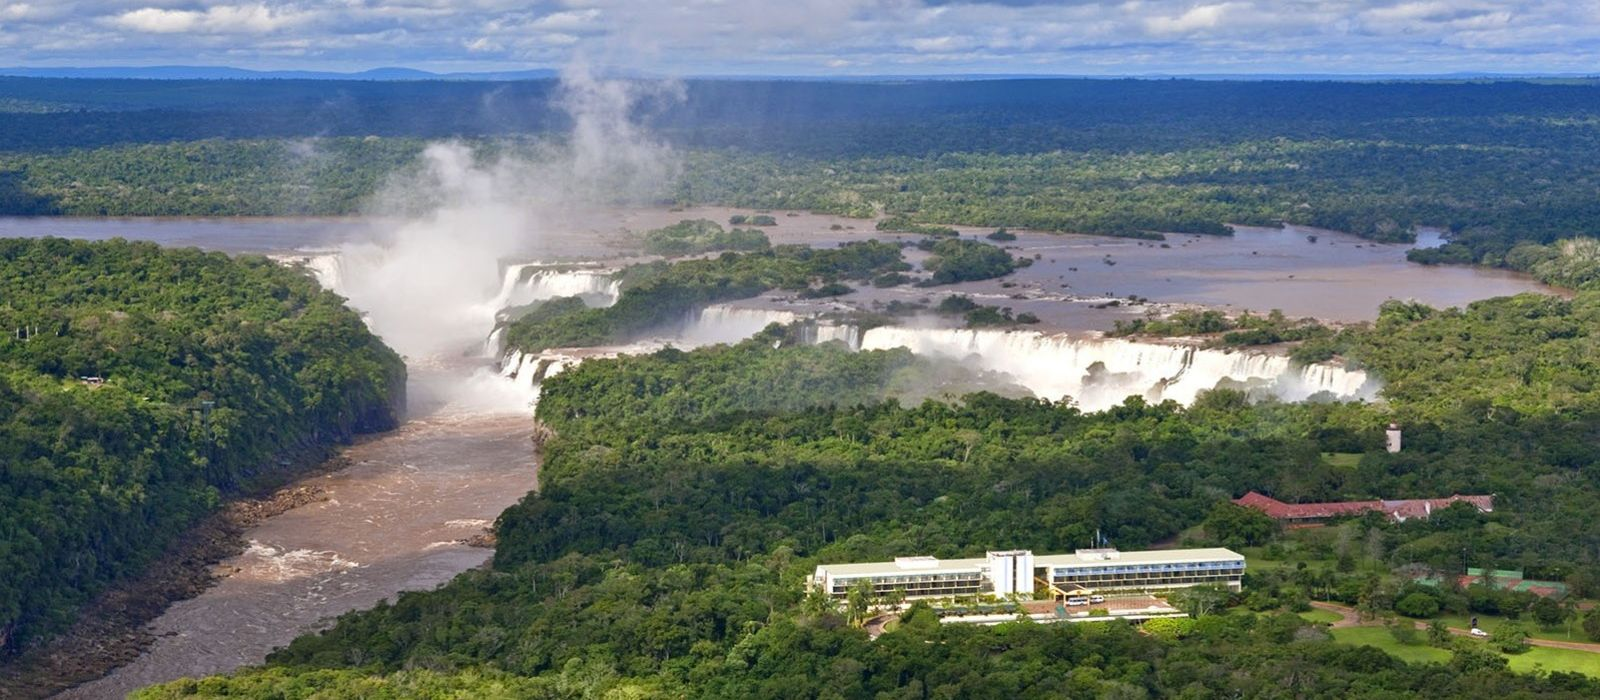 Glaciers, Wildlife and Waterfalls in Argentina Tour Trip 6